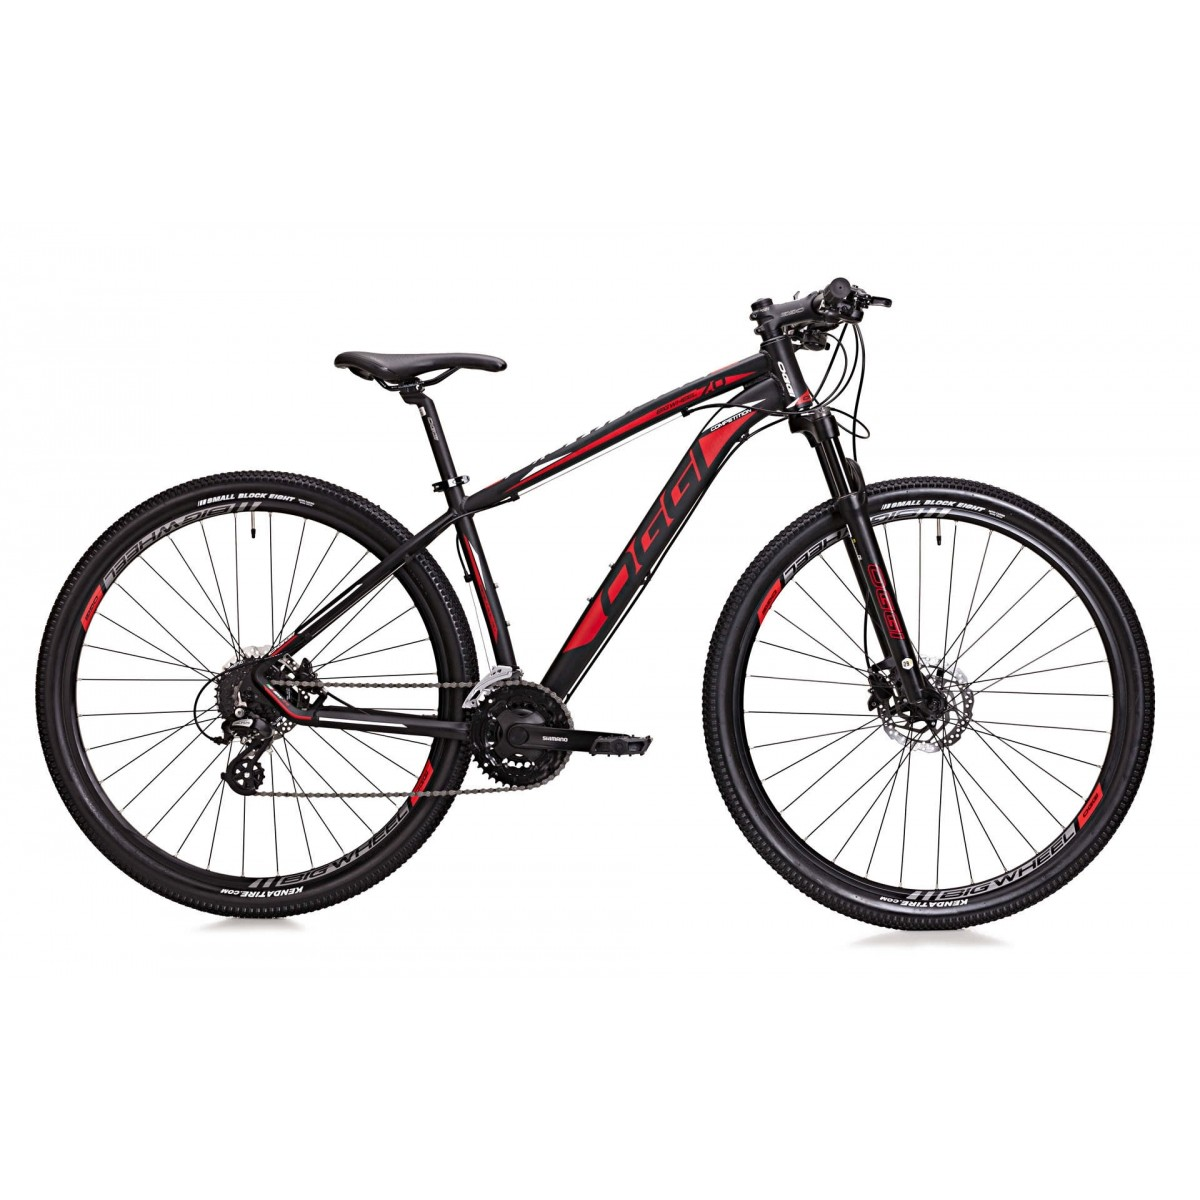 BICICLETA BIG WHEEL 7.0 24VEL. Aro 29